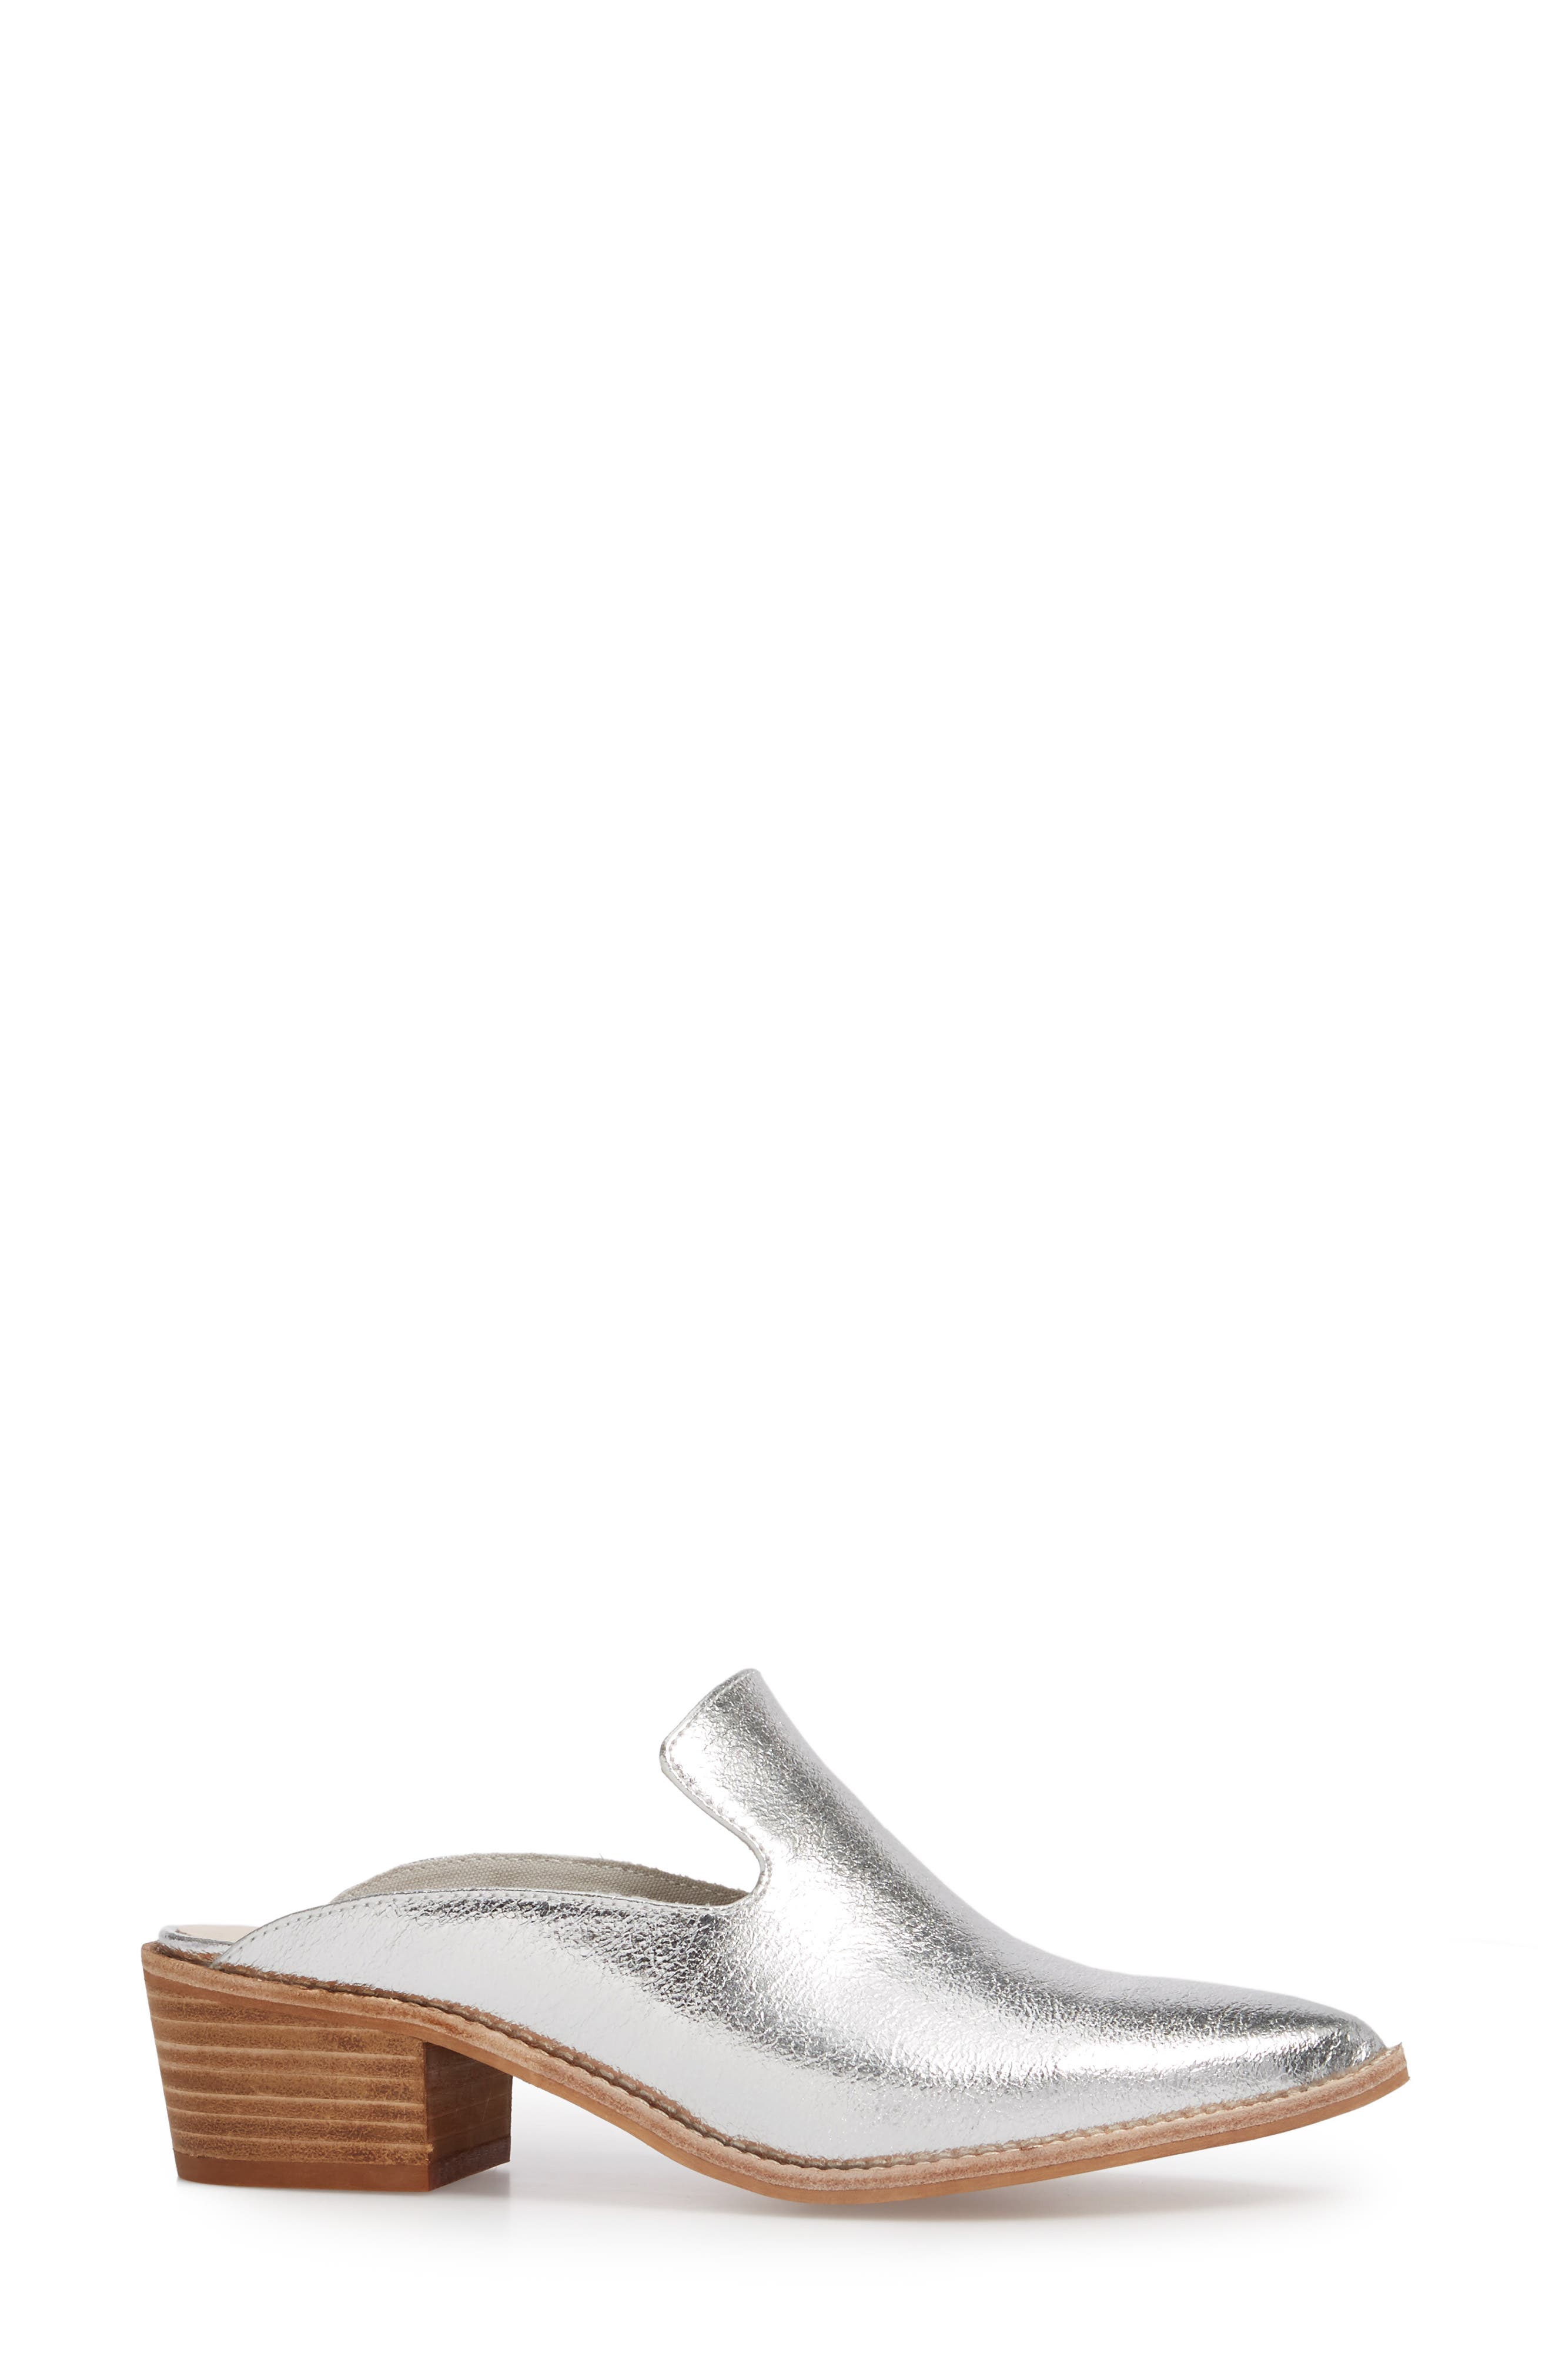 Marnie Loafer Mule,                             Alternate thumbnail 3, color,                             Silver